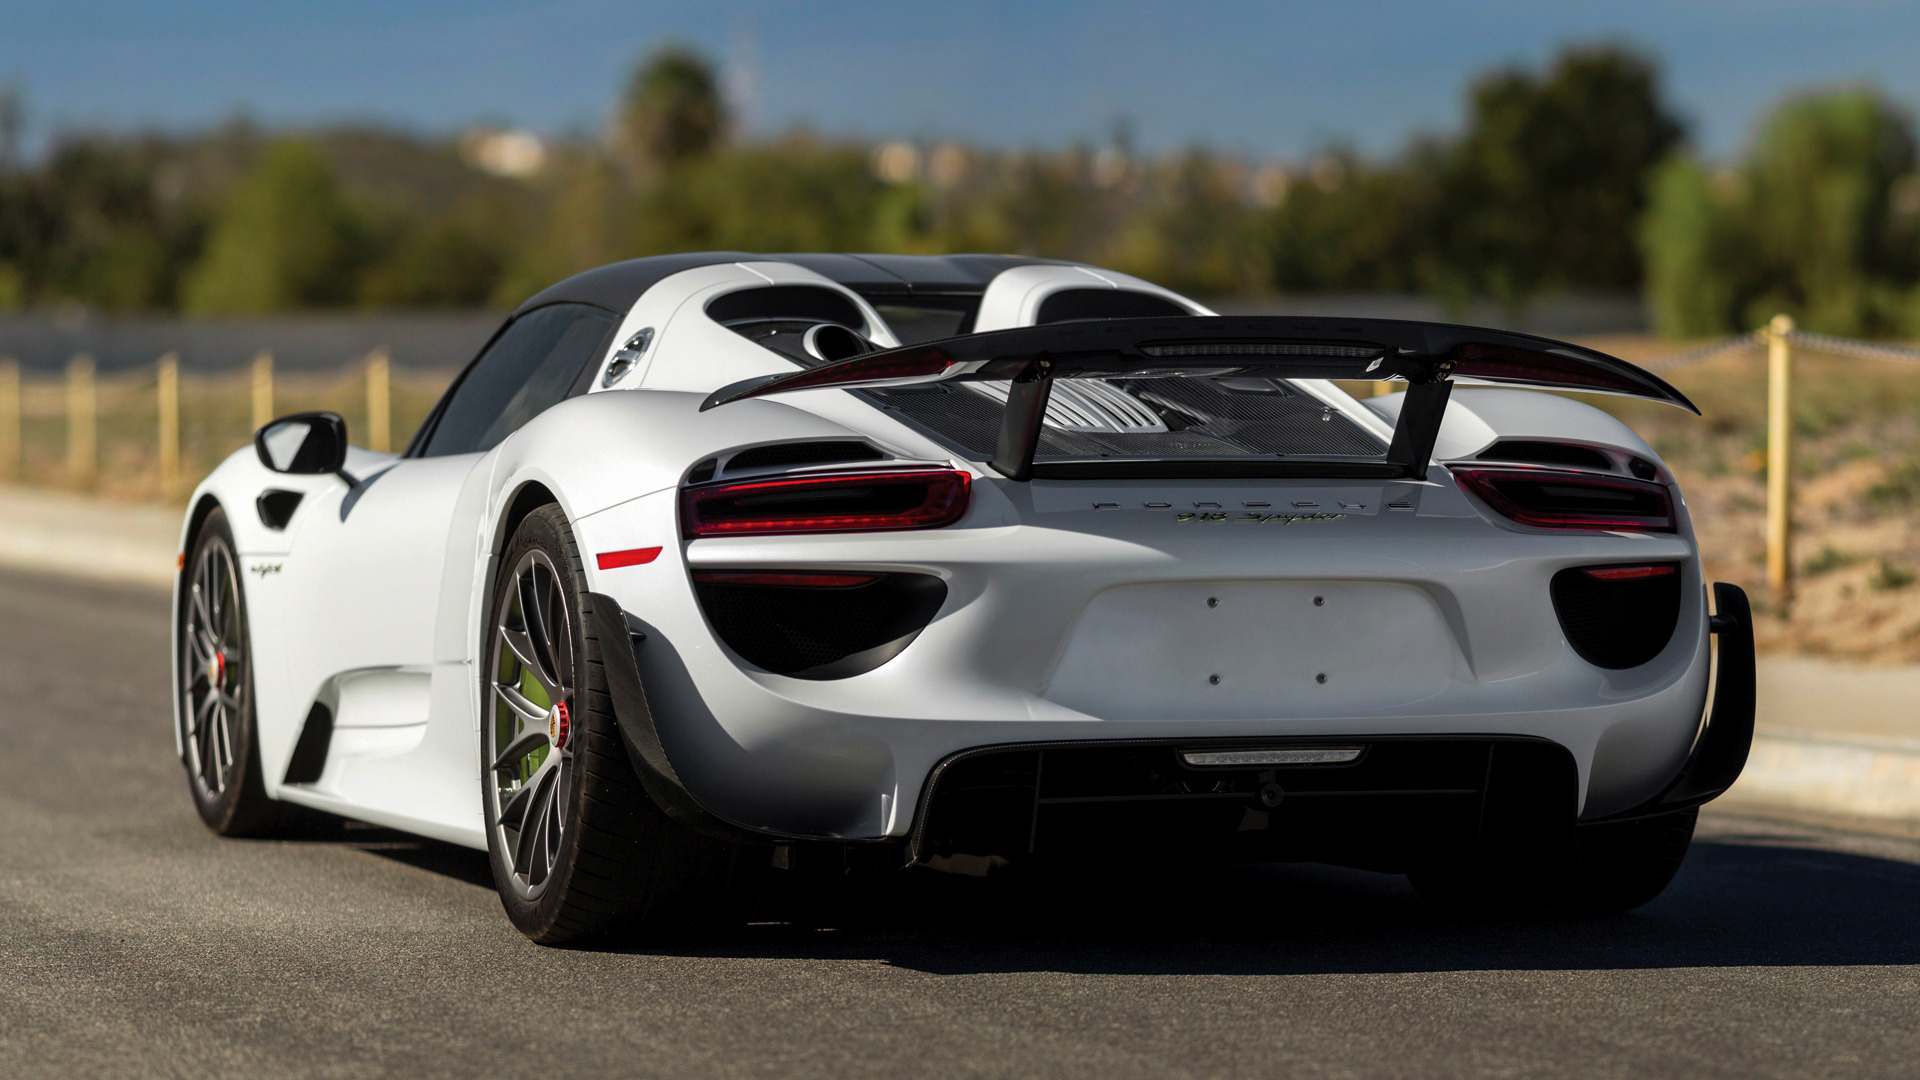 2014 porsche 918 spyder weissach package us wallpapers. Black Bedroom Furniture Sets. Home Design Ideas